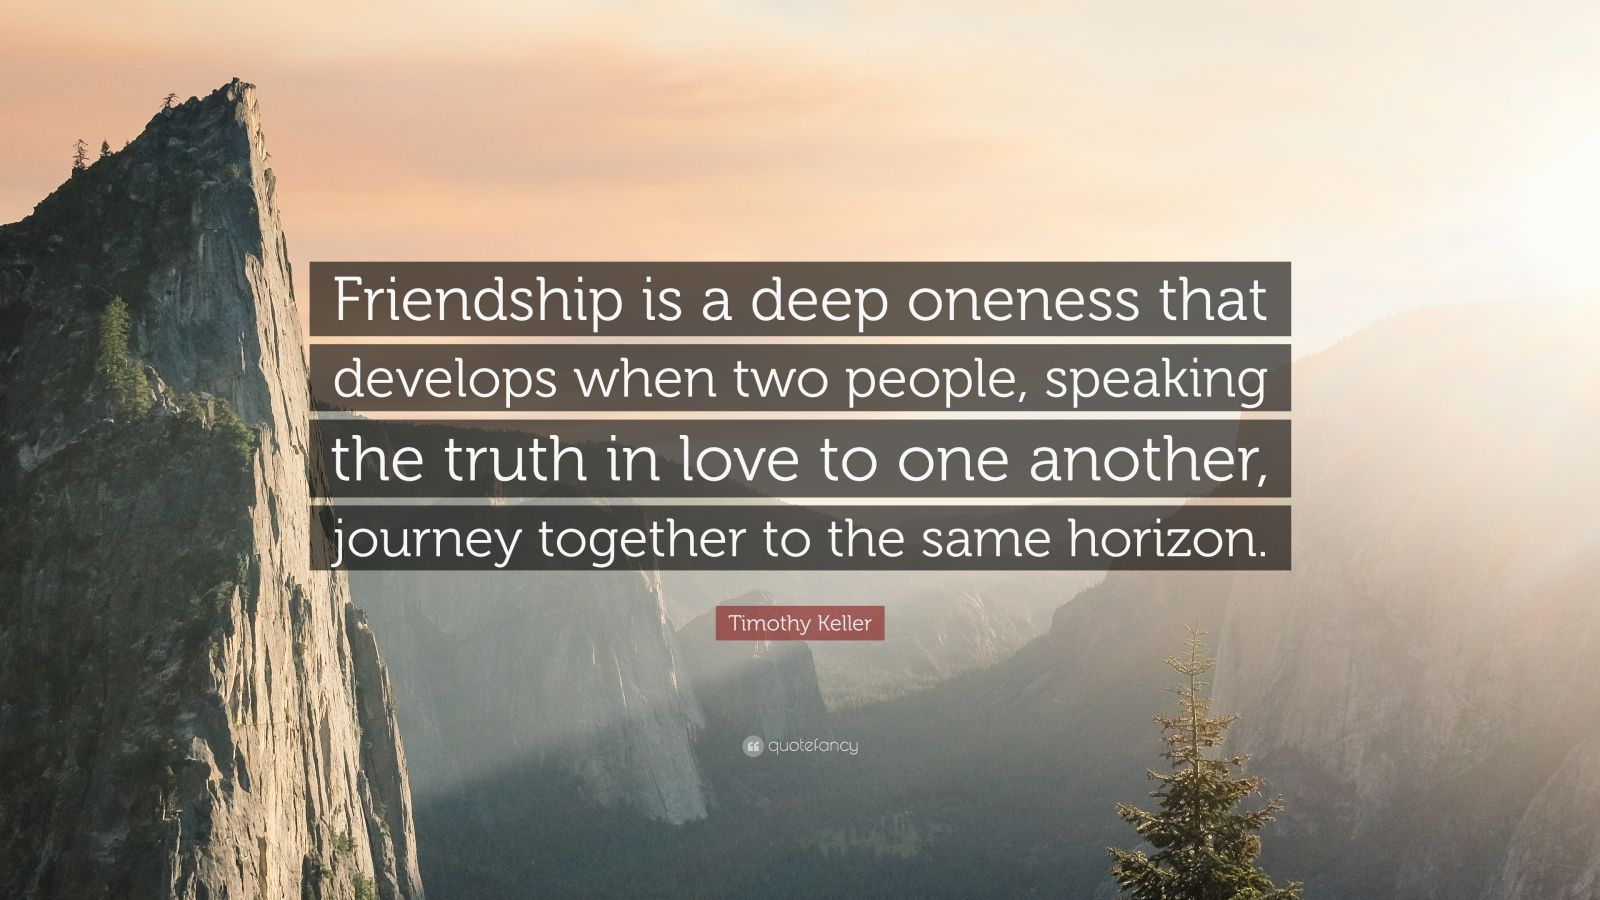 """Timothy Keller Quote: """"Friendship is a deep oneness that develops when two people, speaking the truth in love to one another, journey together to the same horizon."""""""